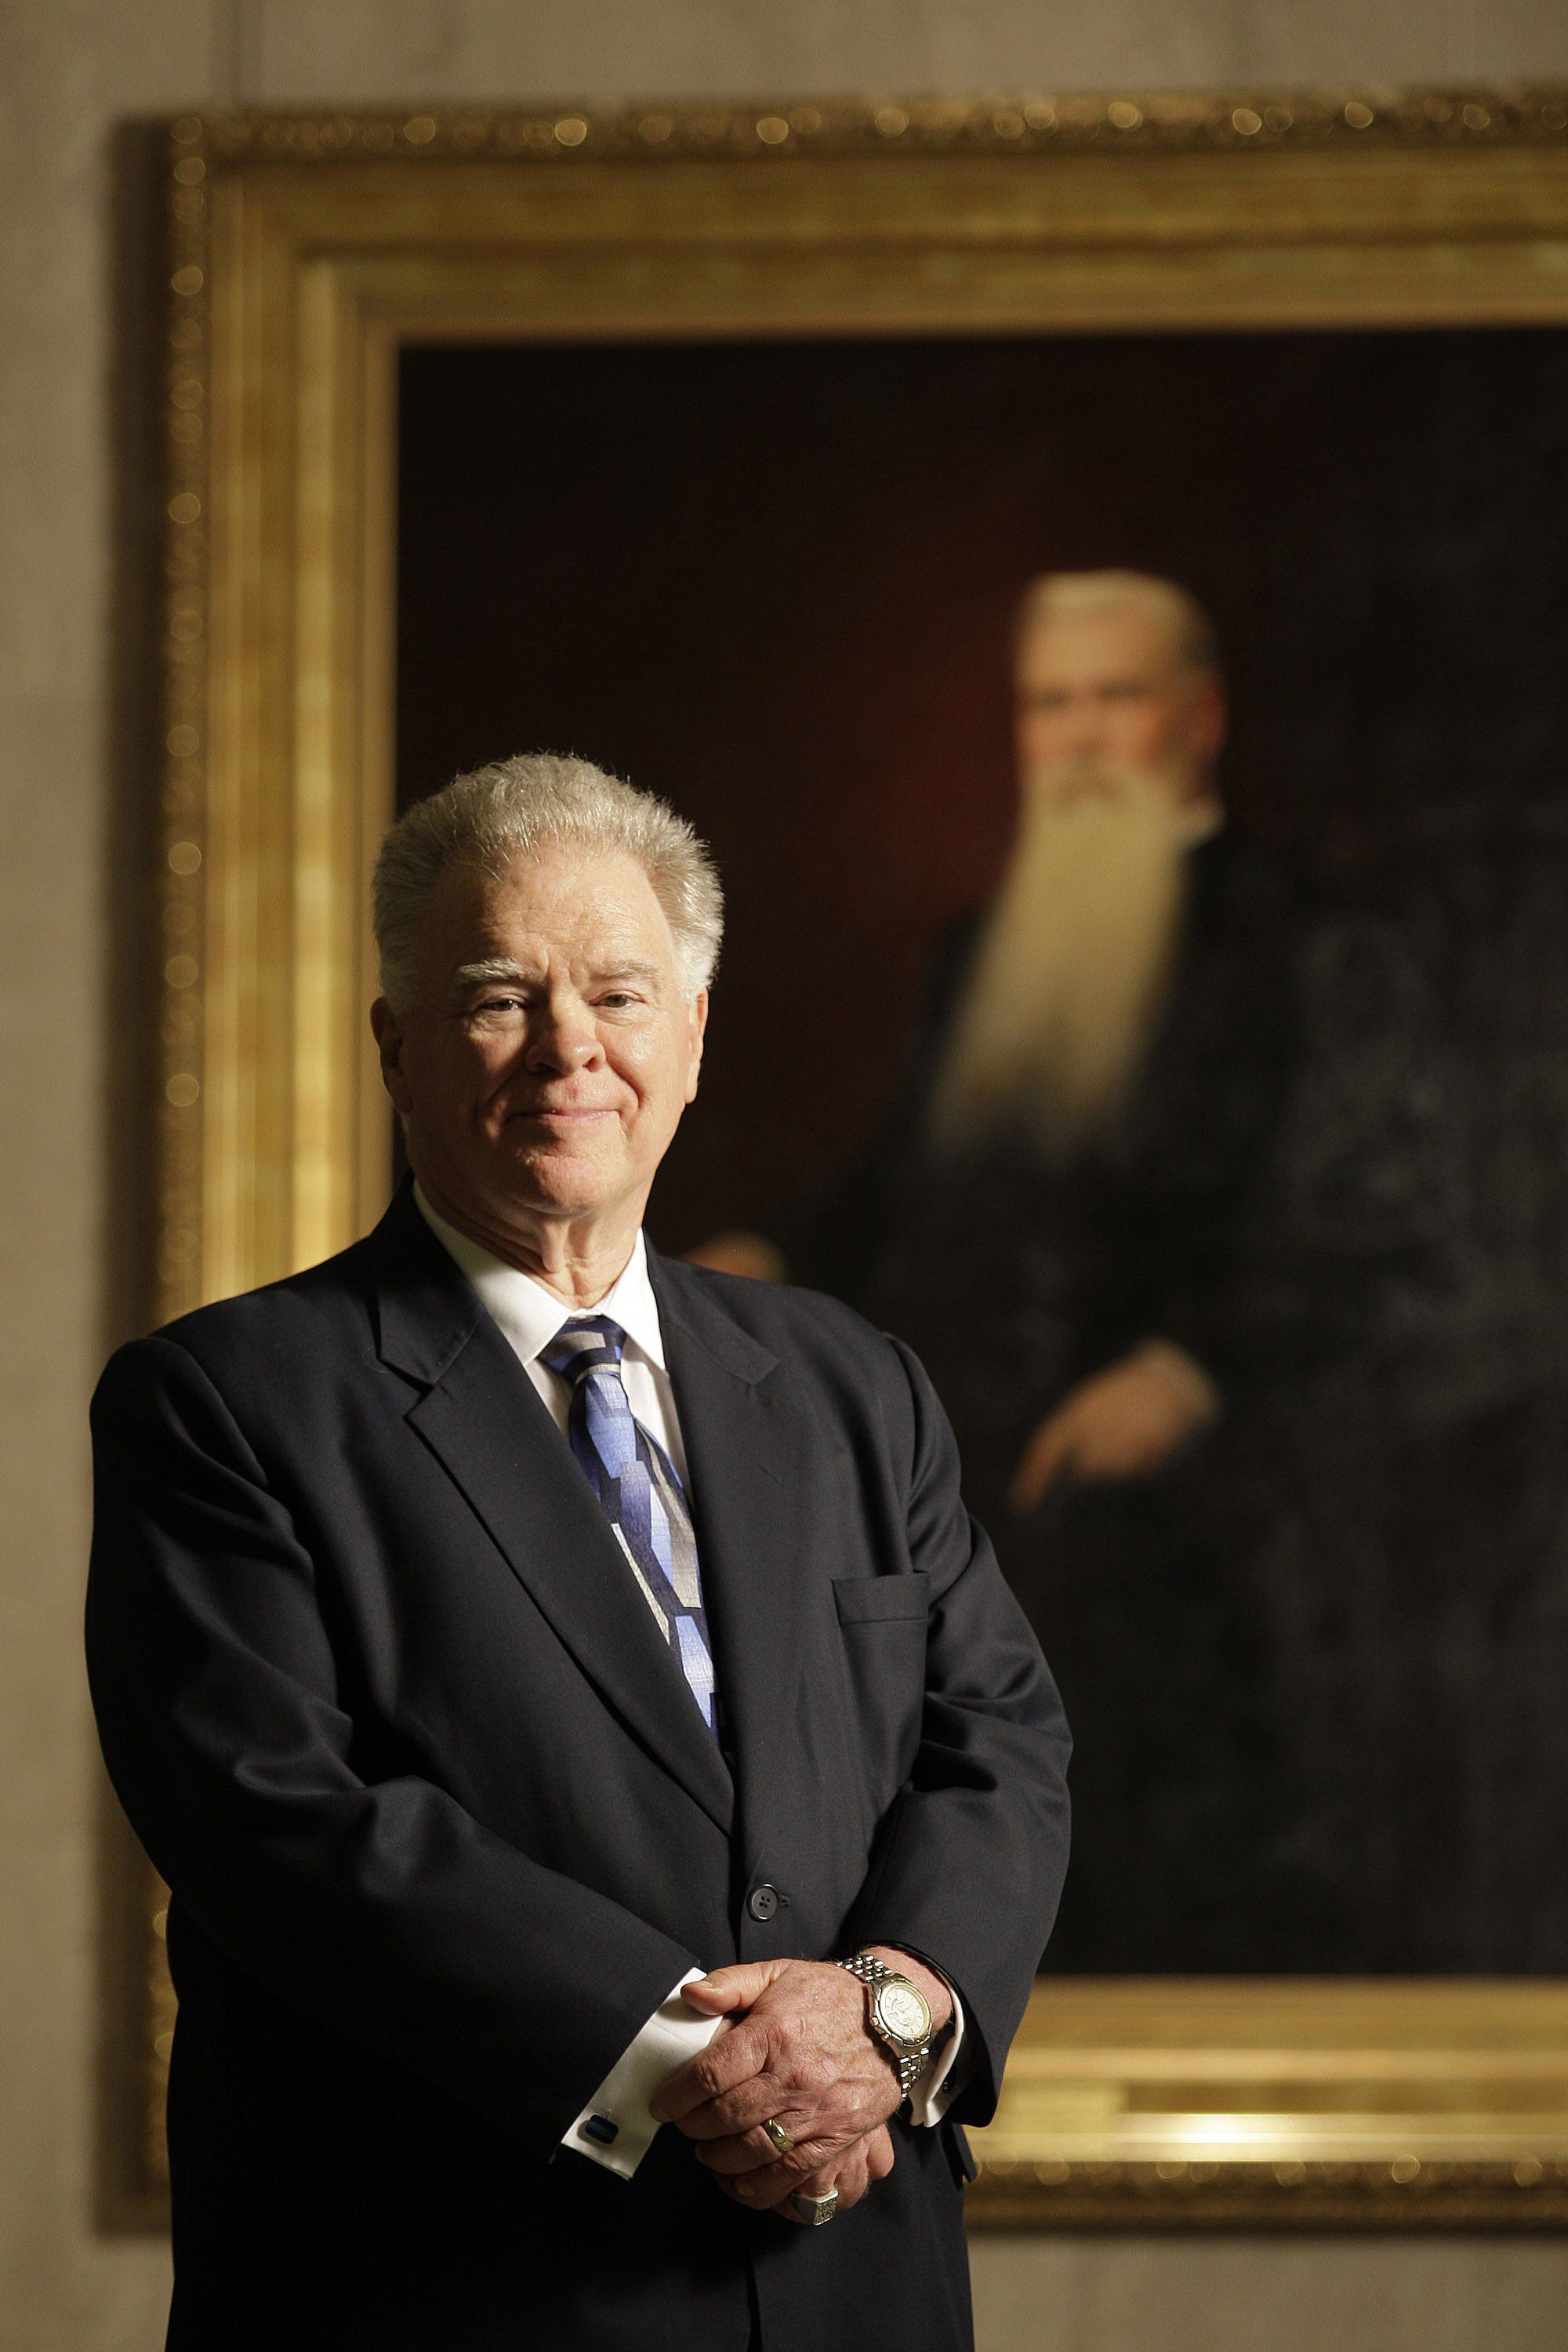 Paige Patterson posing in the rotunda of the B.H. Carroll Memorial Complex on Tuesday, Oct. 12, 2010. According to a Washington Post story, a woman claims Patterson previously encouraged her not to report a rape to police and told her to forgive the man who allegedly raped her after she invited him into her apartment. (Paul Moseley/Fort Worth Star-Telegram/TNS via Getty Images)